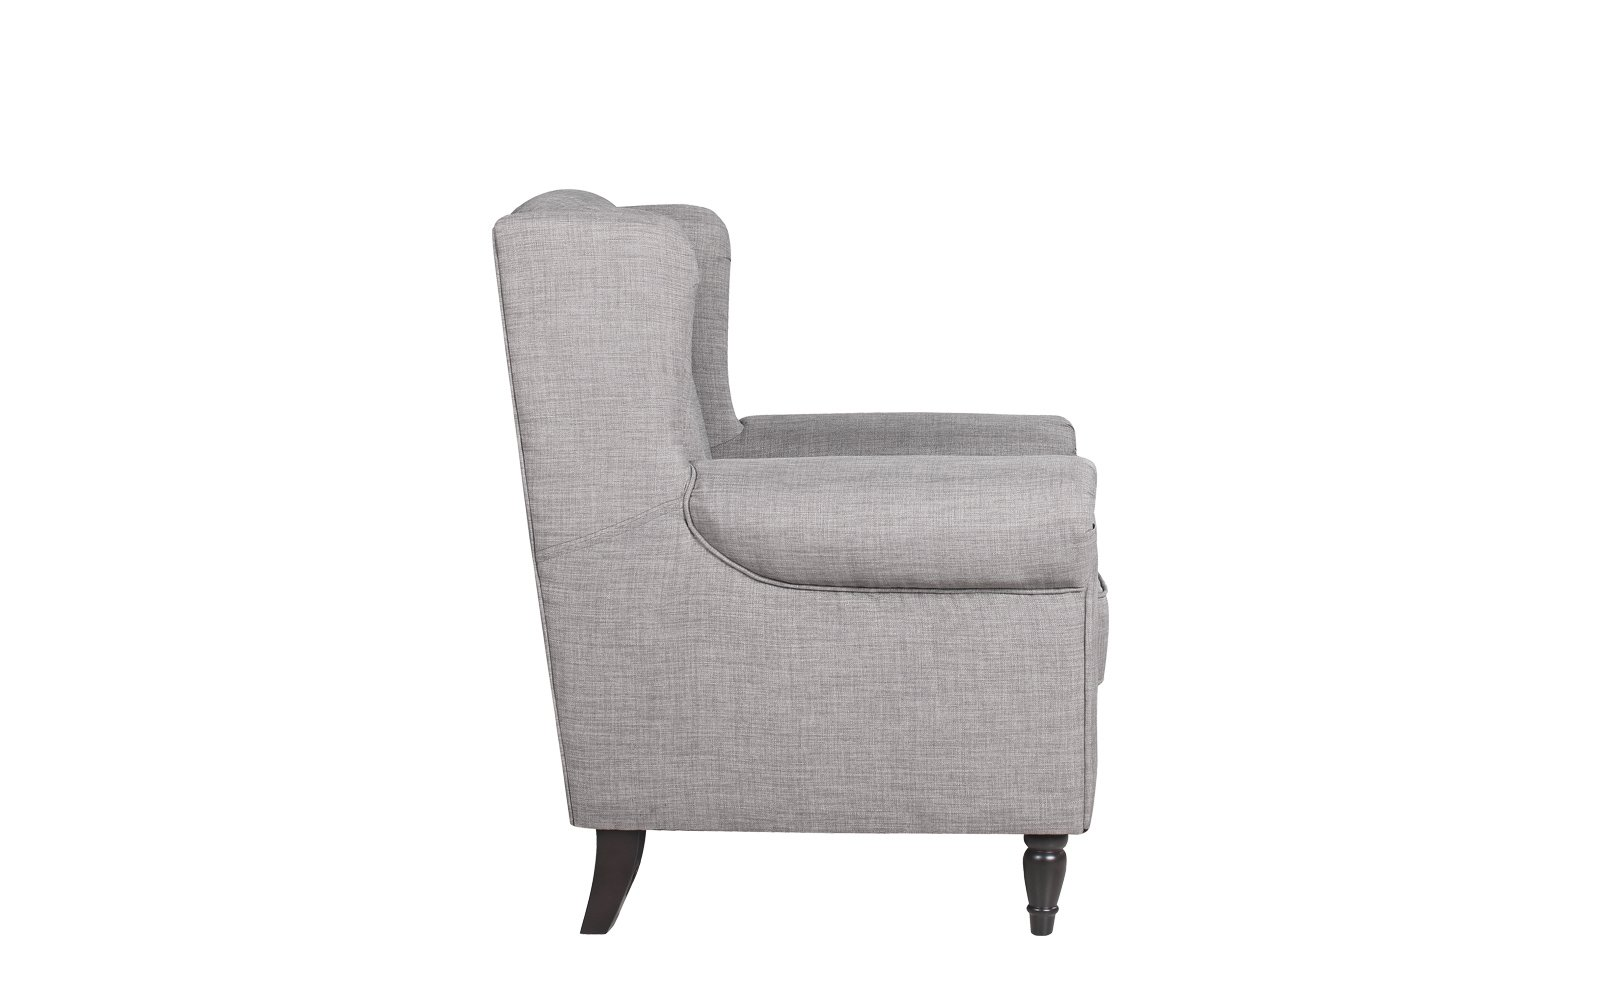 galway classic scroll arm linen accent chair sofamania lgy linon table white light grey side bar stools carpet termination strip target vanity inch square tablecloth bath and